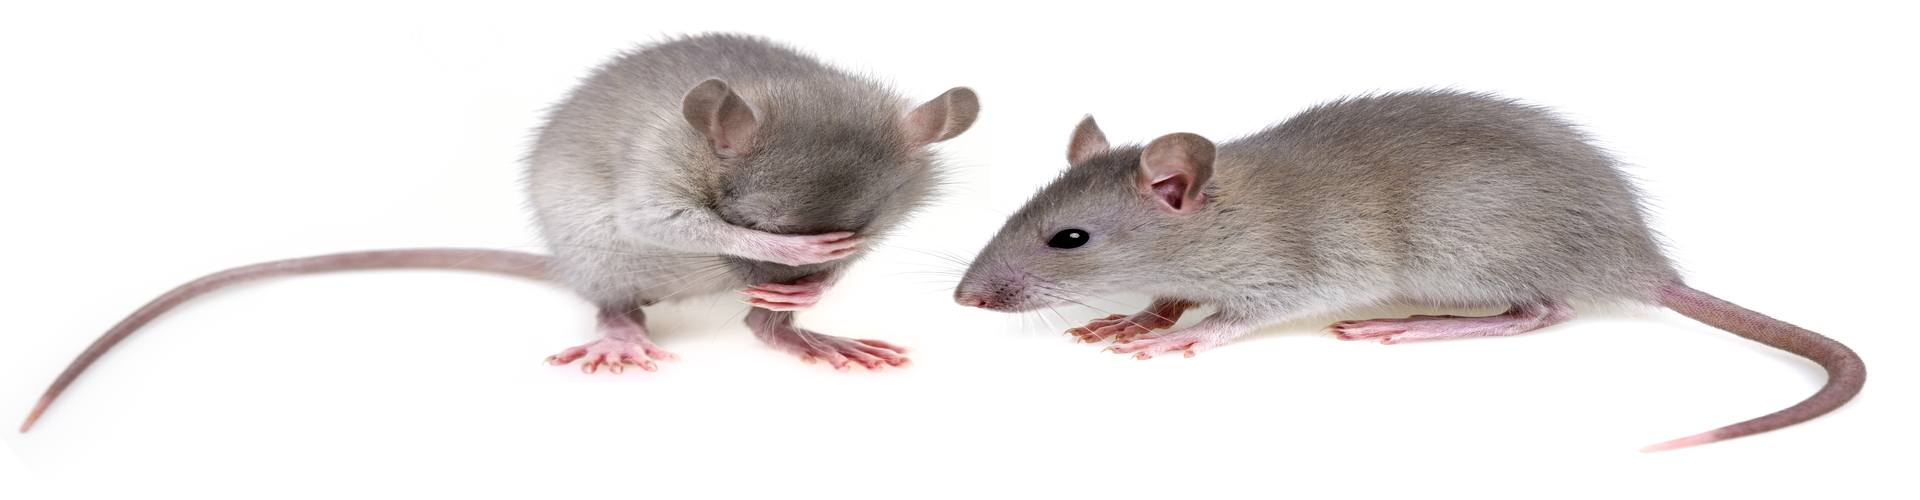 Fumigating Your Home with Mouse Urine Odor Removal Solutions